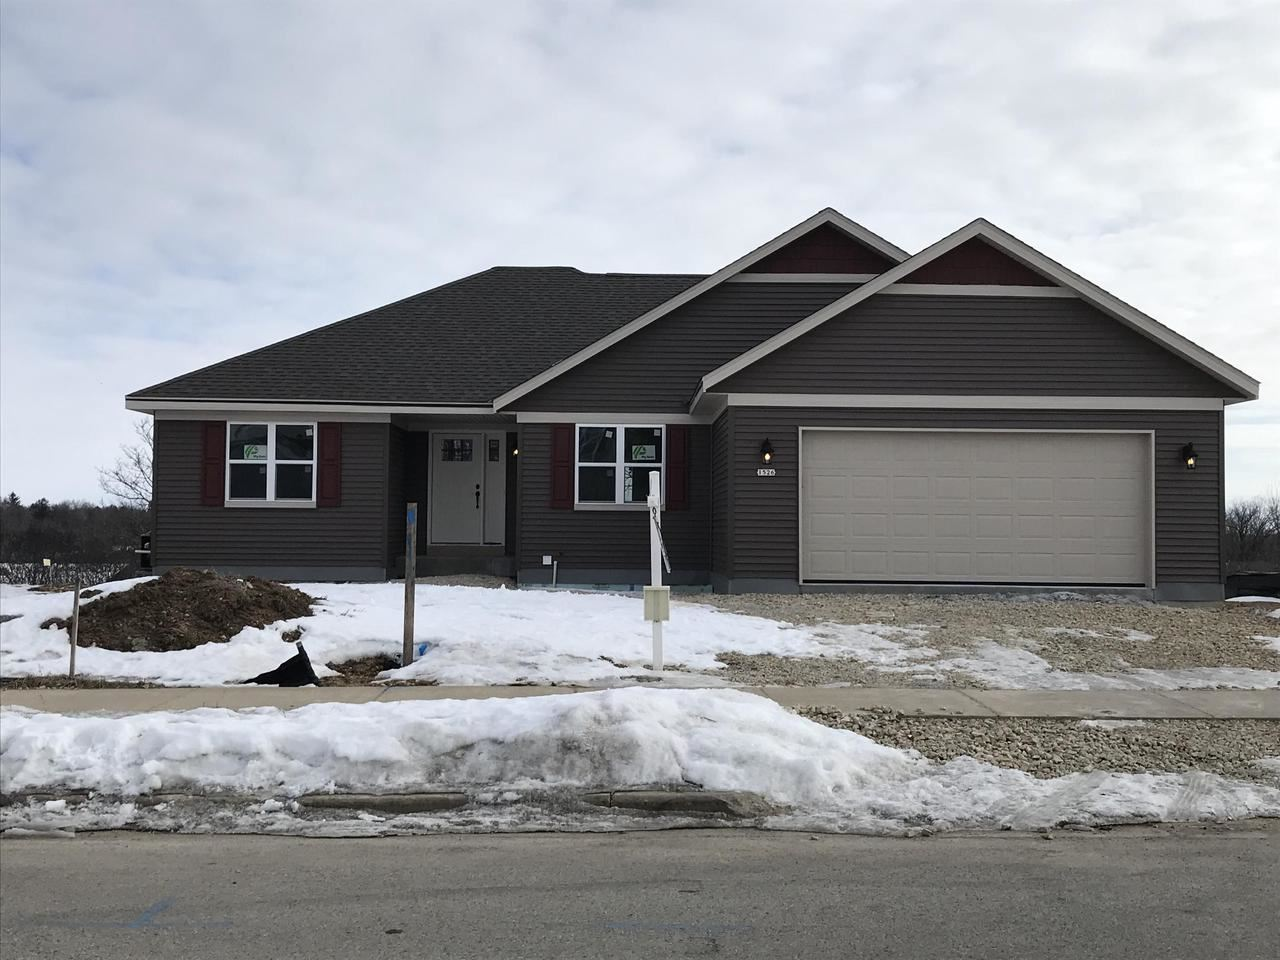 1526 Whitewater Dr, West Bend, WI 53095 - MLS#: 1675054